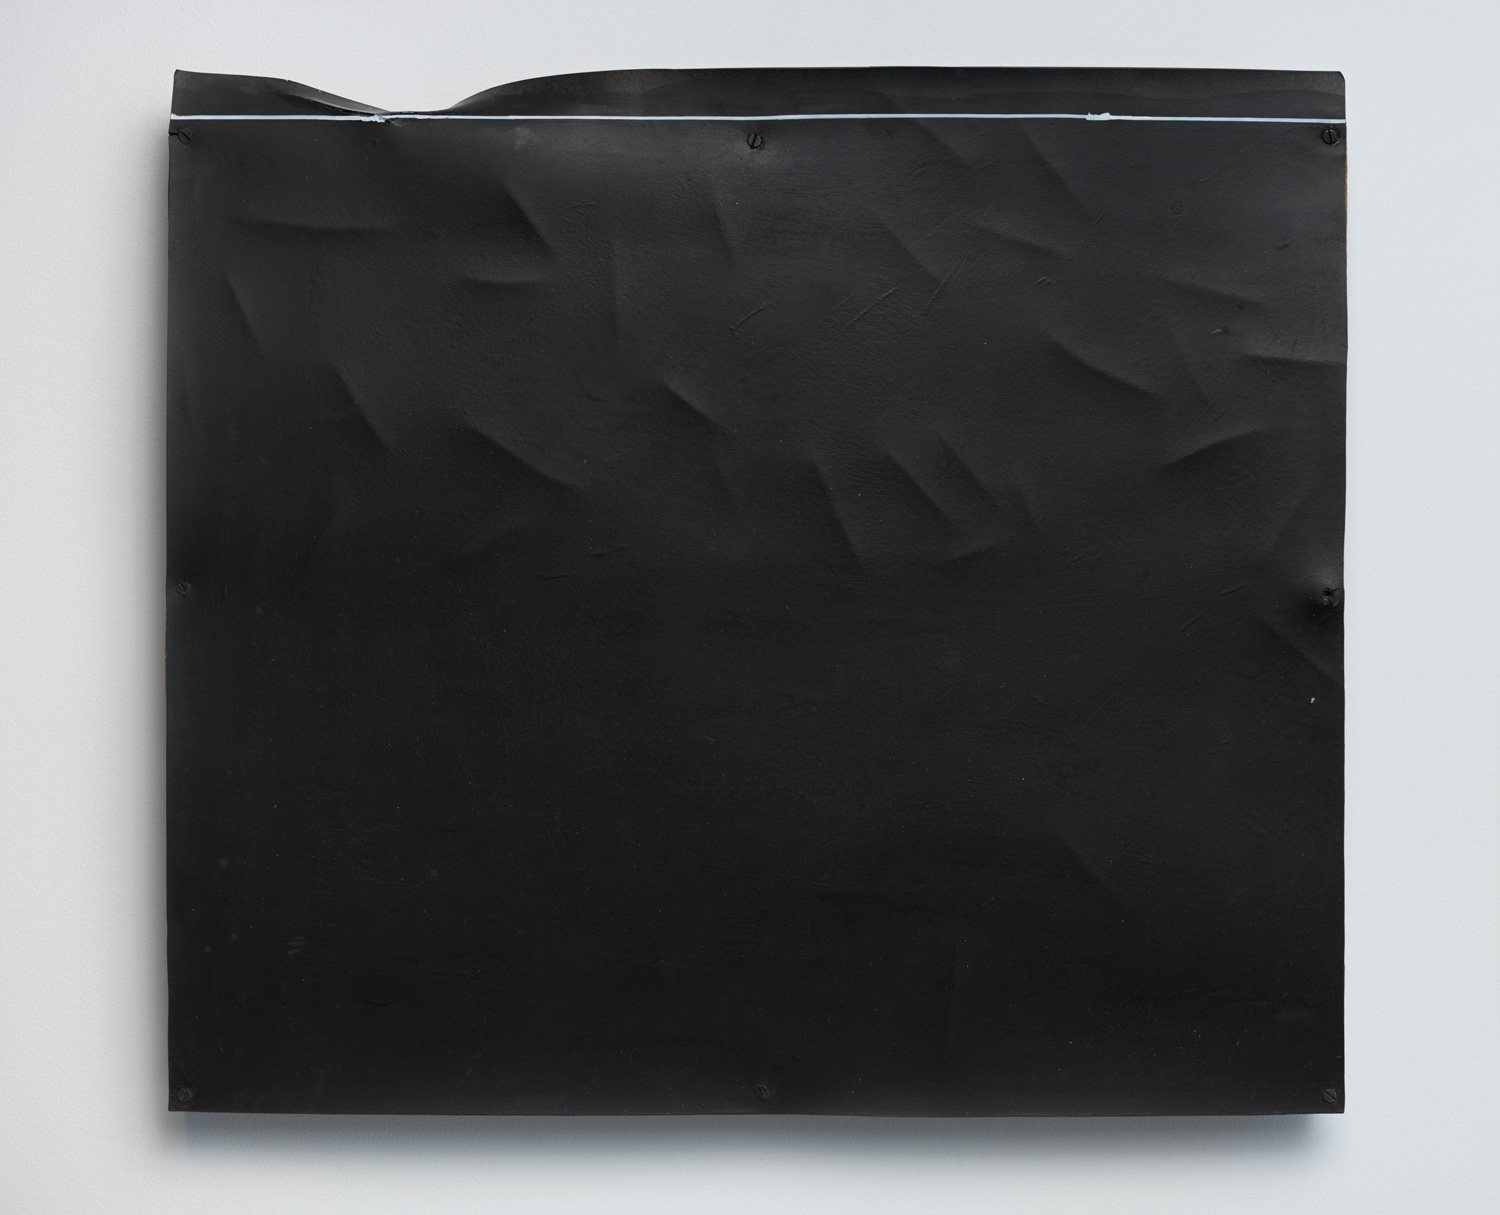 Verge of a Broken Boundary , 1977 端破境 ( tanpakyō ) Rubber, wood, paint, marker ink 17 x 19 5/16 x 1 3/8 inches 43.3 x 49 x 3.5 cm